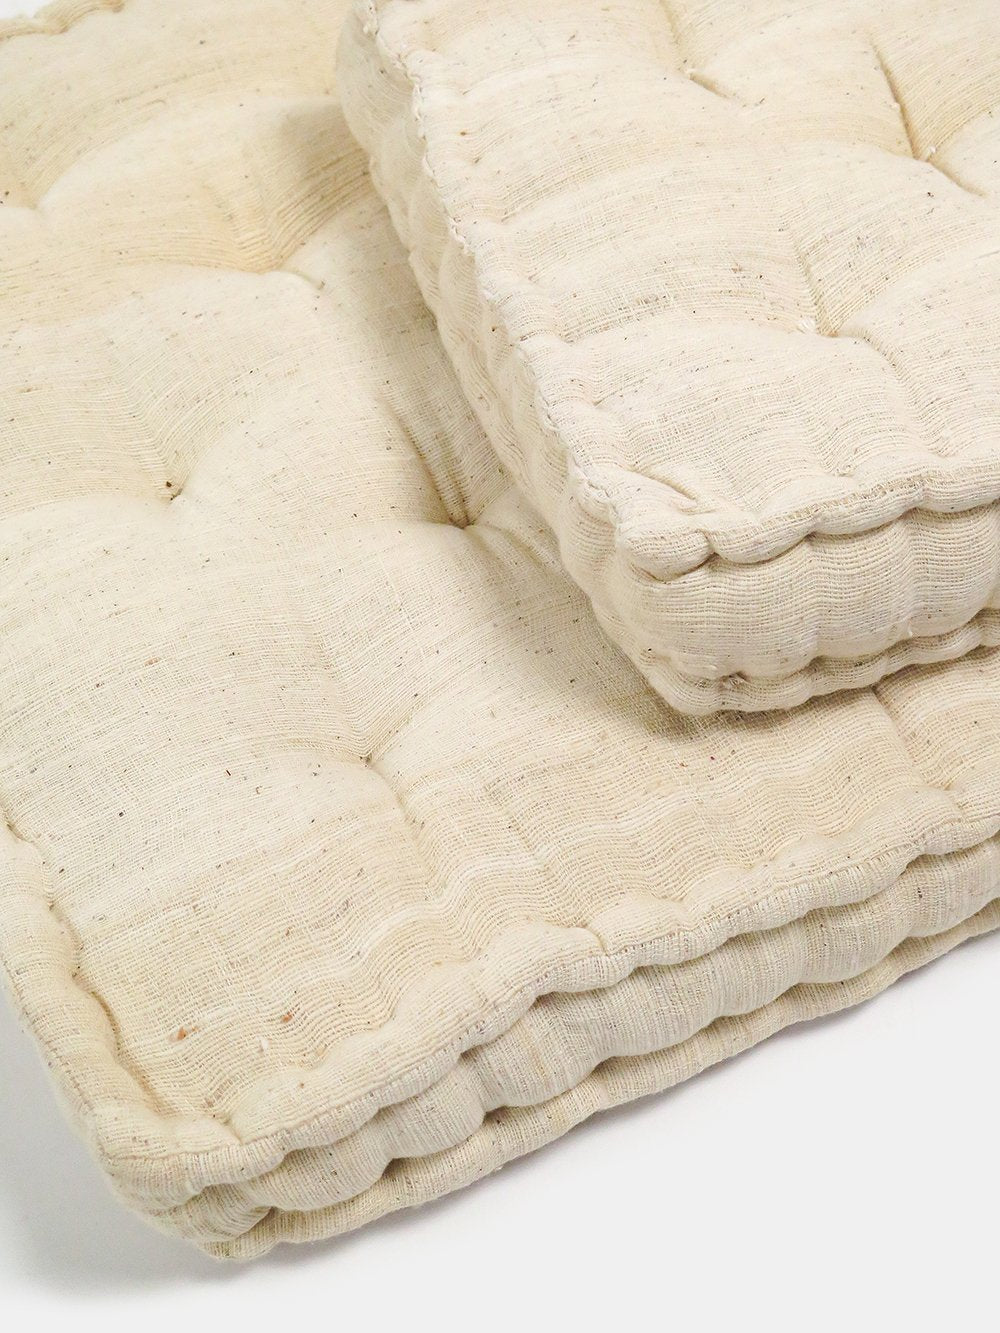 hand-tufted khadi cotton seat cushion